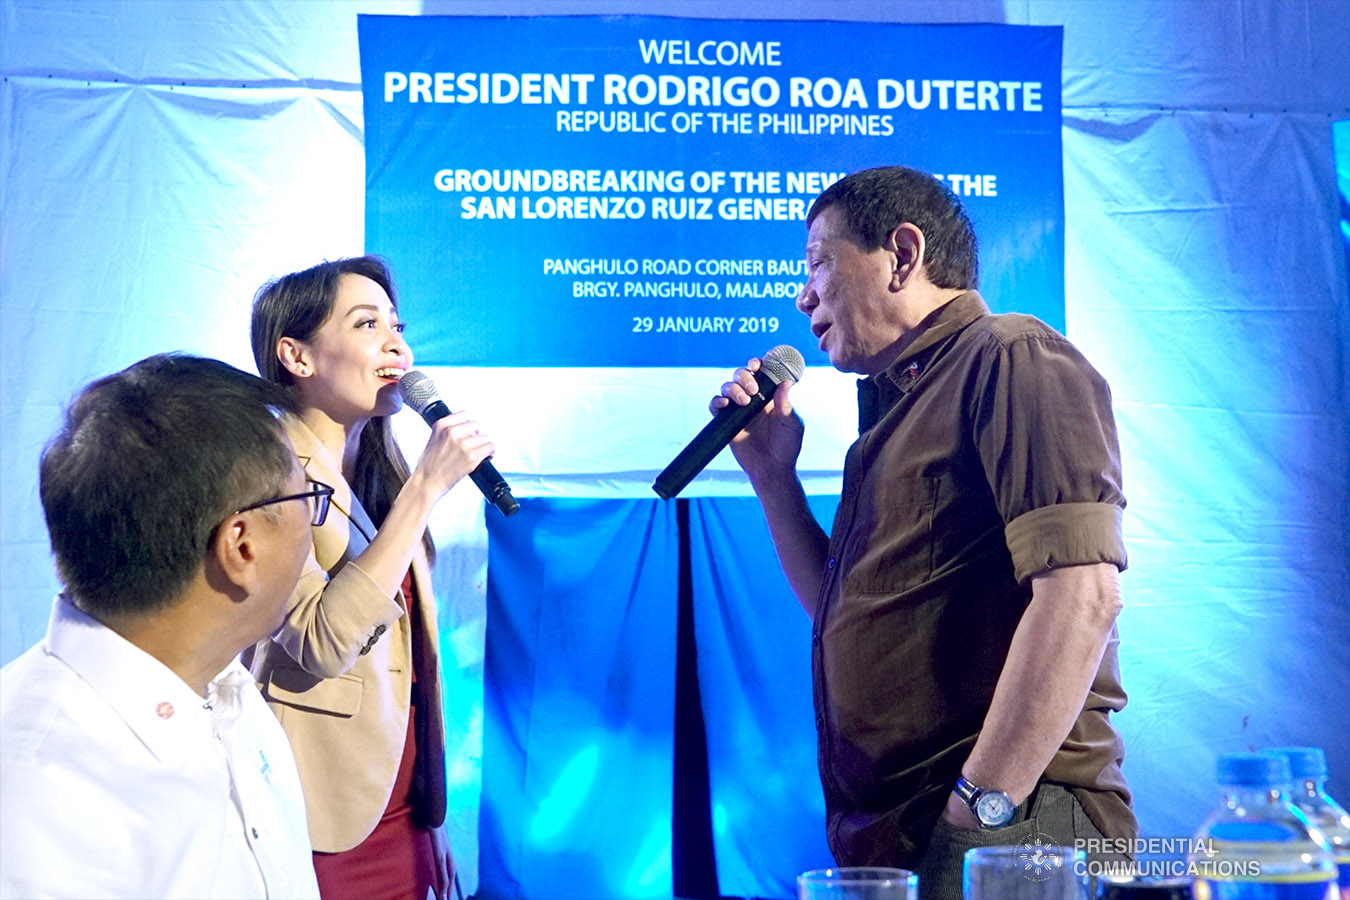 President Rodrigo Roa Duterte sings along with the guest performer on the sidelines of the groundbreaking ceremony for the construction of the San Lorenzo Ruiz General Hospital (SLRGH) in Malabon City on January 29, 2019. RENE LUMAWAG/PRESIDENTIAL PHOTO